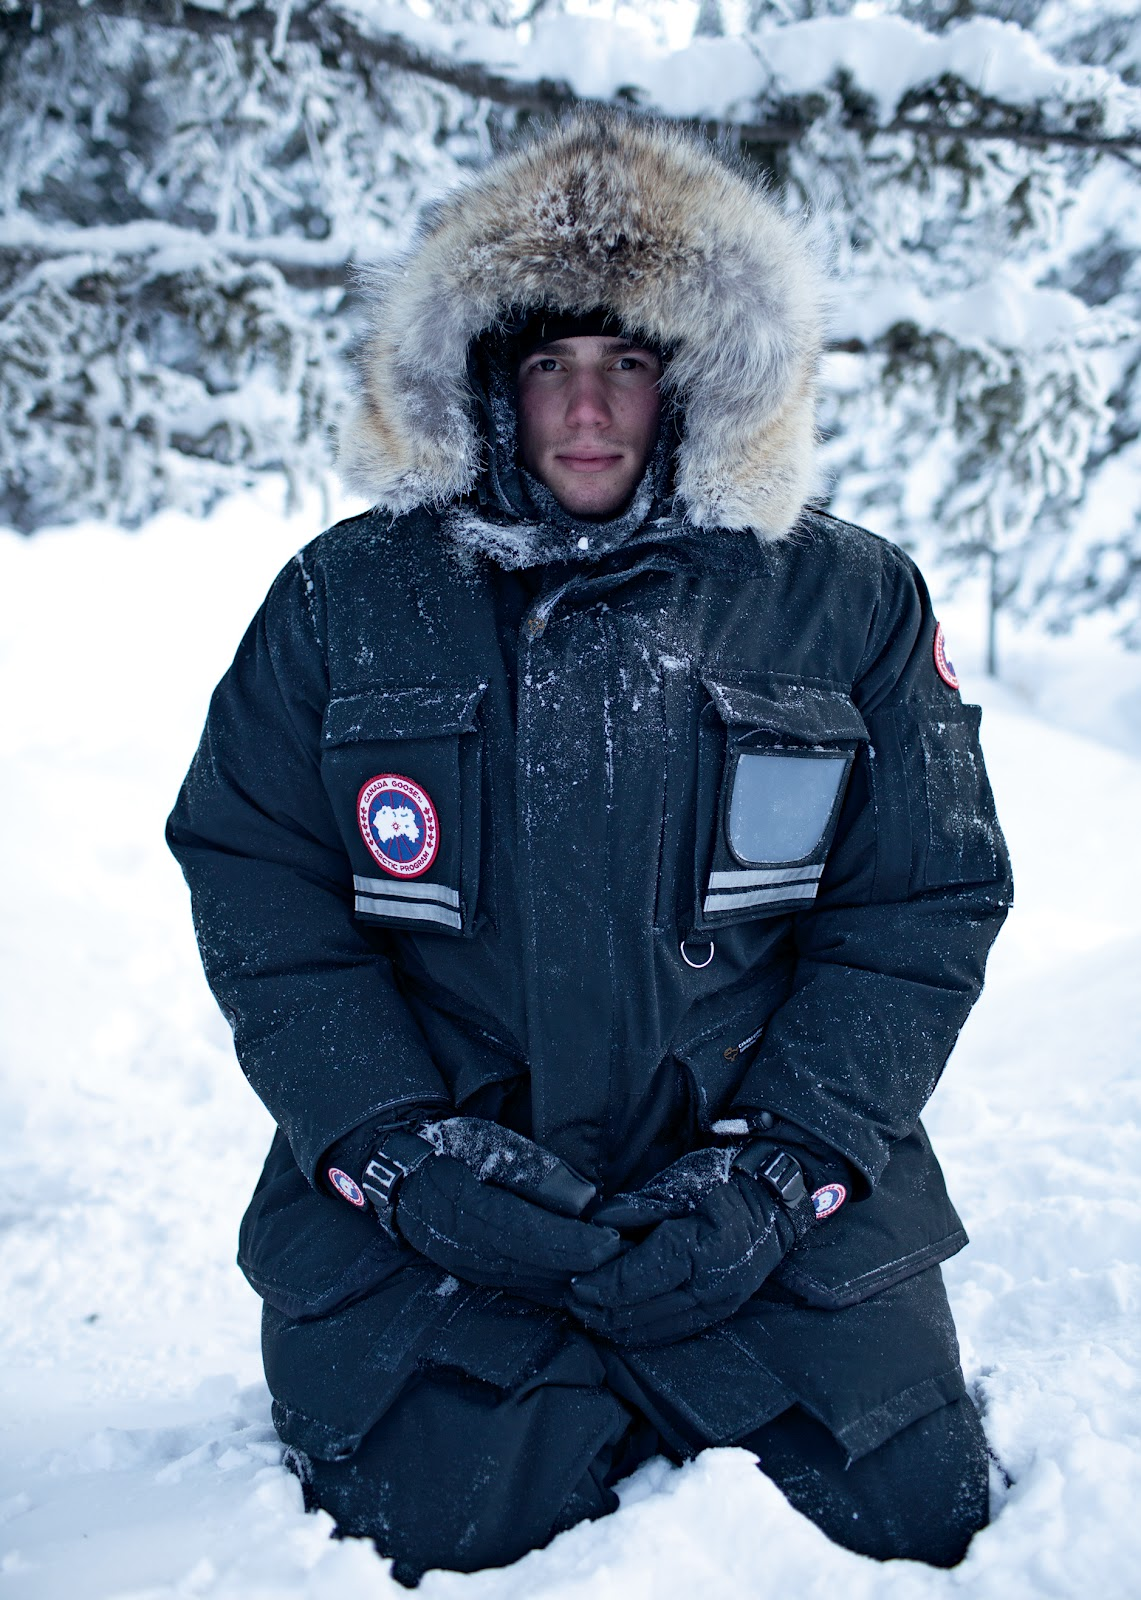 Canada Goose victoria parka online shop - CANADA GOOSE >>> BRAVE THE ELEMENTS / 14 oz. store berlin